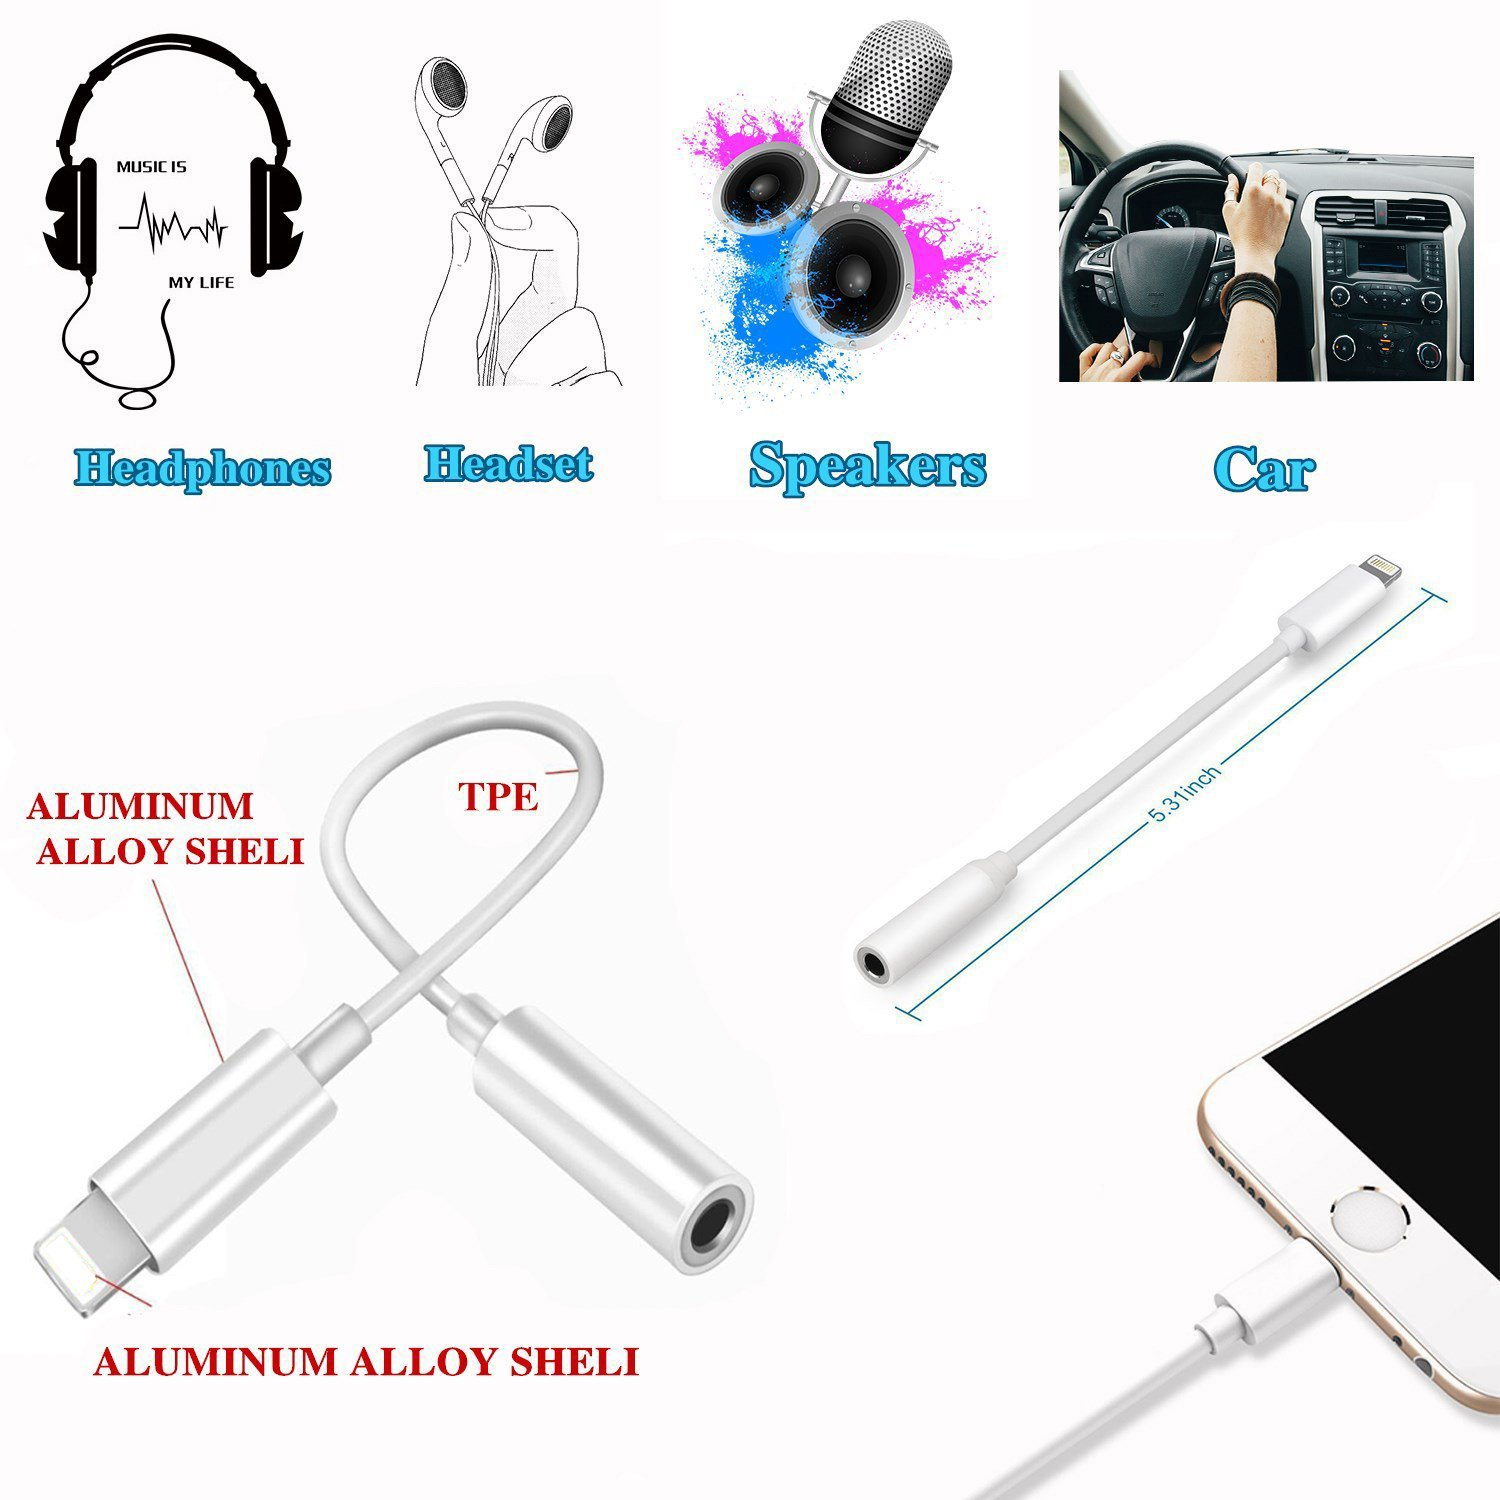 Lightning Jack Adapter,Lightning to 3.5 mm Headphone Jack Adapter Lightning Connector to 3.5mm AUX Audio Jack Earphone Extender Jack Stereo for iPhone X iPhone 8/8Plus iPhone 7/7Plus Support IOS 11 by iNassen (Image #6)